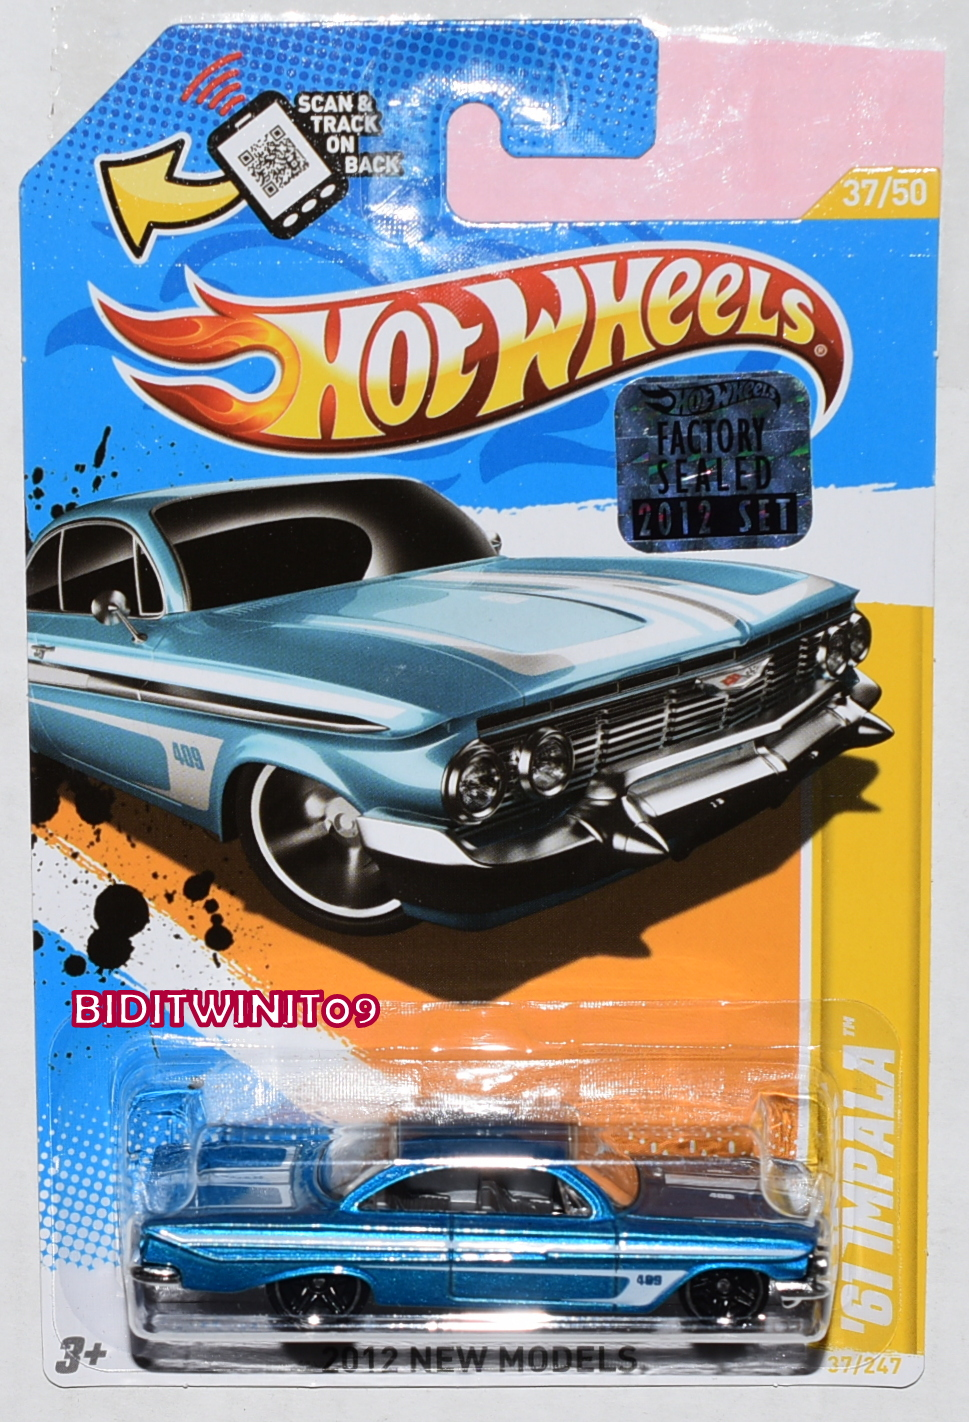 HOT WHEELS CLASSICS SERIES 5 COPPER STOPPER #2/30 BLUE CHASE E+